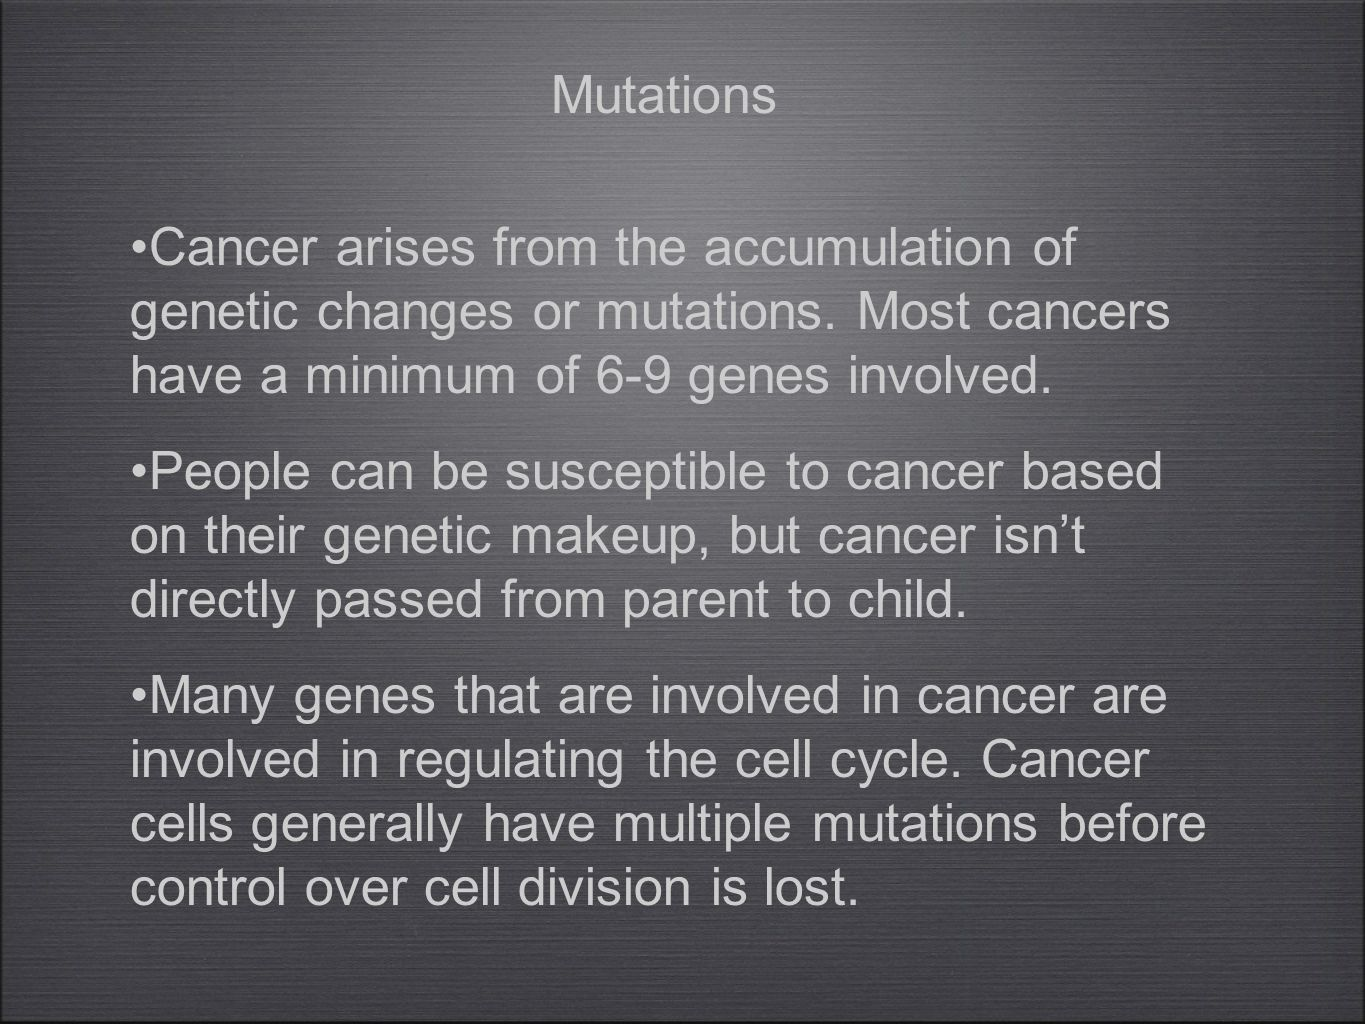 Cancer arises from the accumulation of genetic changes or mutations. Most cancers have a minimum of 6-9 genes involved. People can be susceptible to c